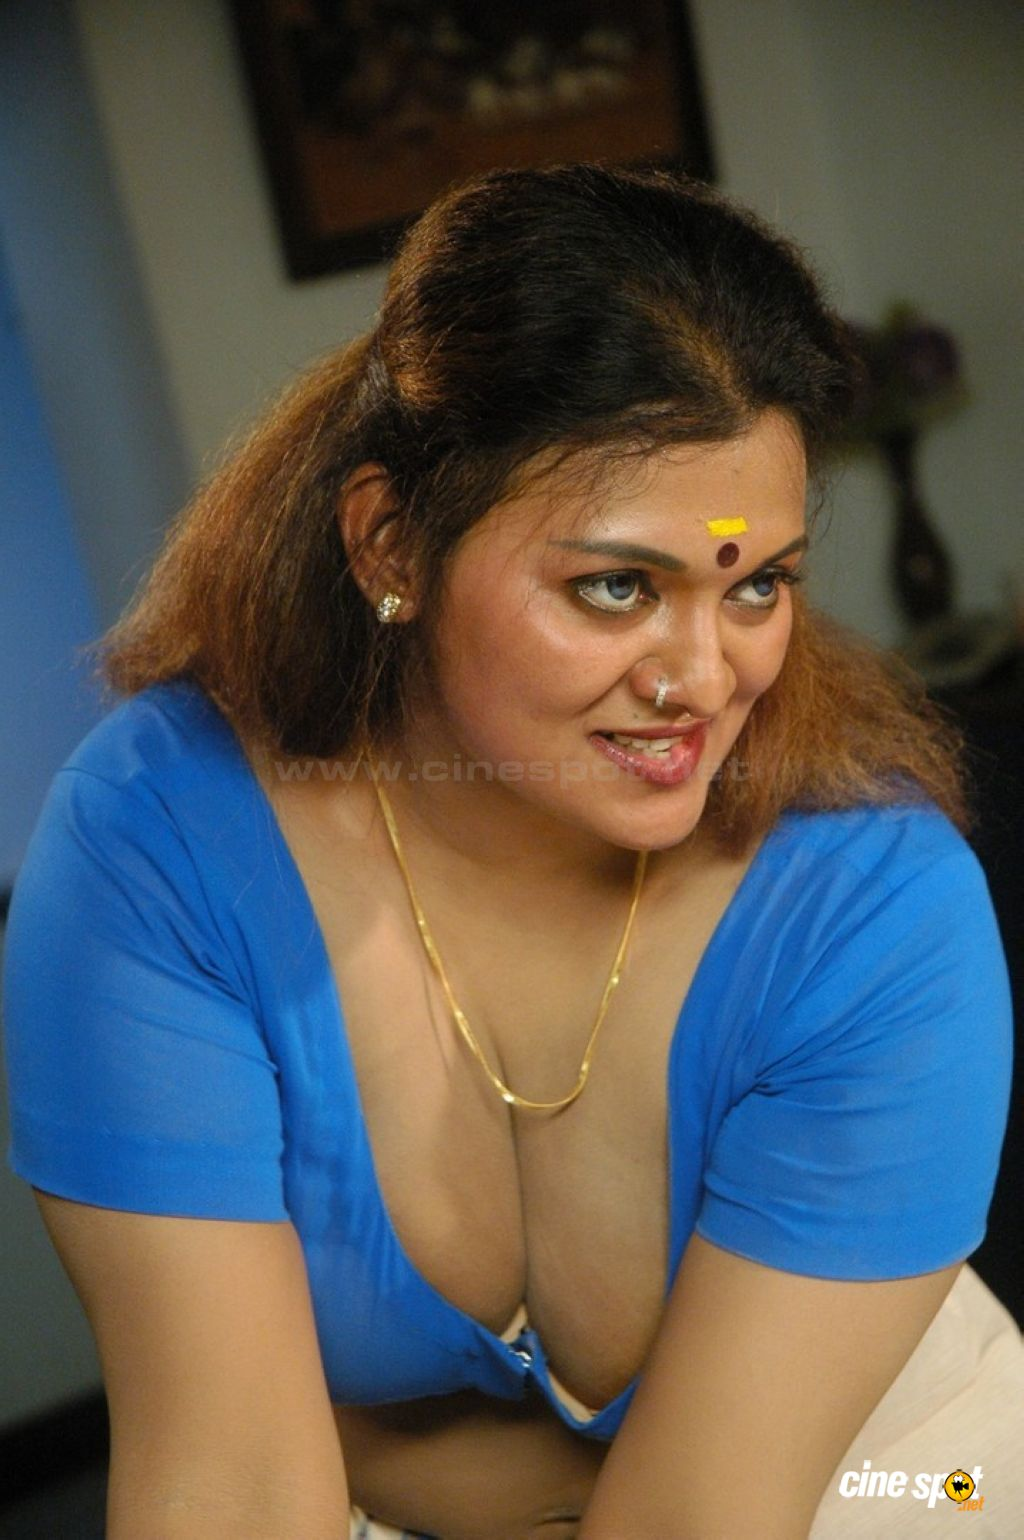 http://4.bp.blogspot.com/_iB0HD6eU-EE/TVKd749FYUI/AAAAAAAAFuE/yxt5AMCwufs/s1600/Thiruttu+Sirukki+Hot+sexy+spicy+tamil+movie+photos+_39_.JPG